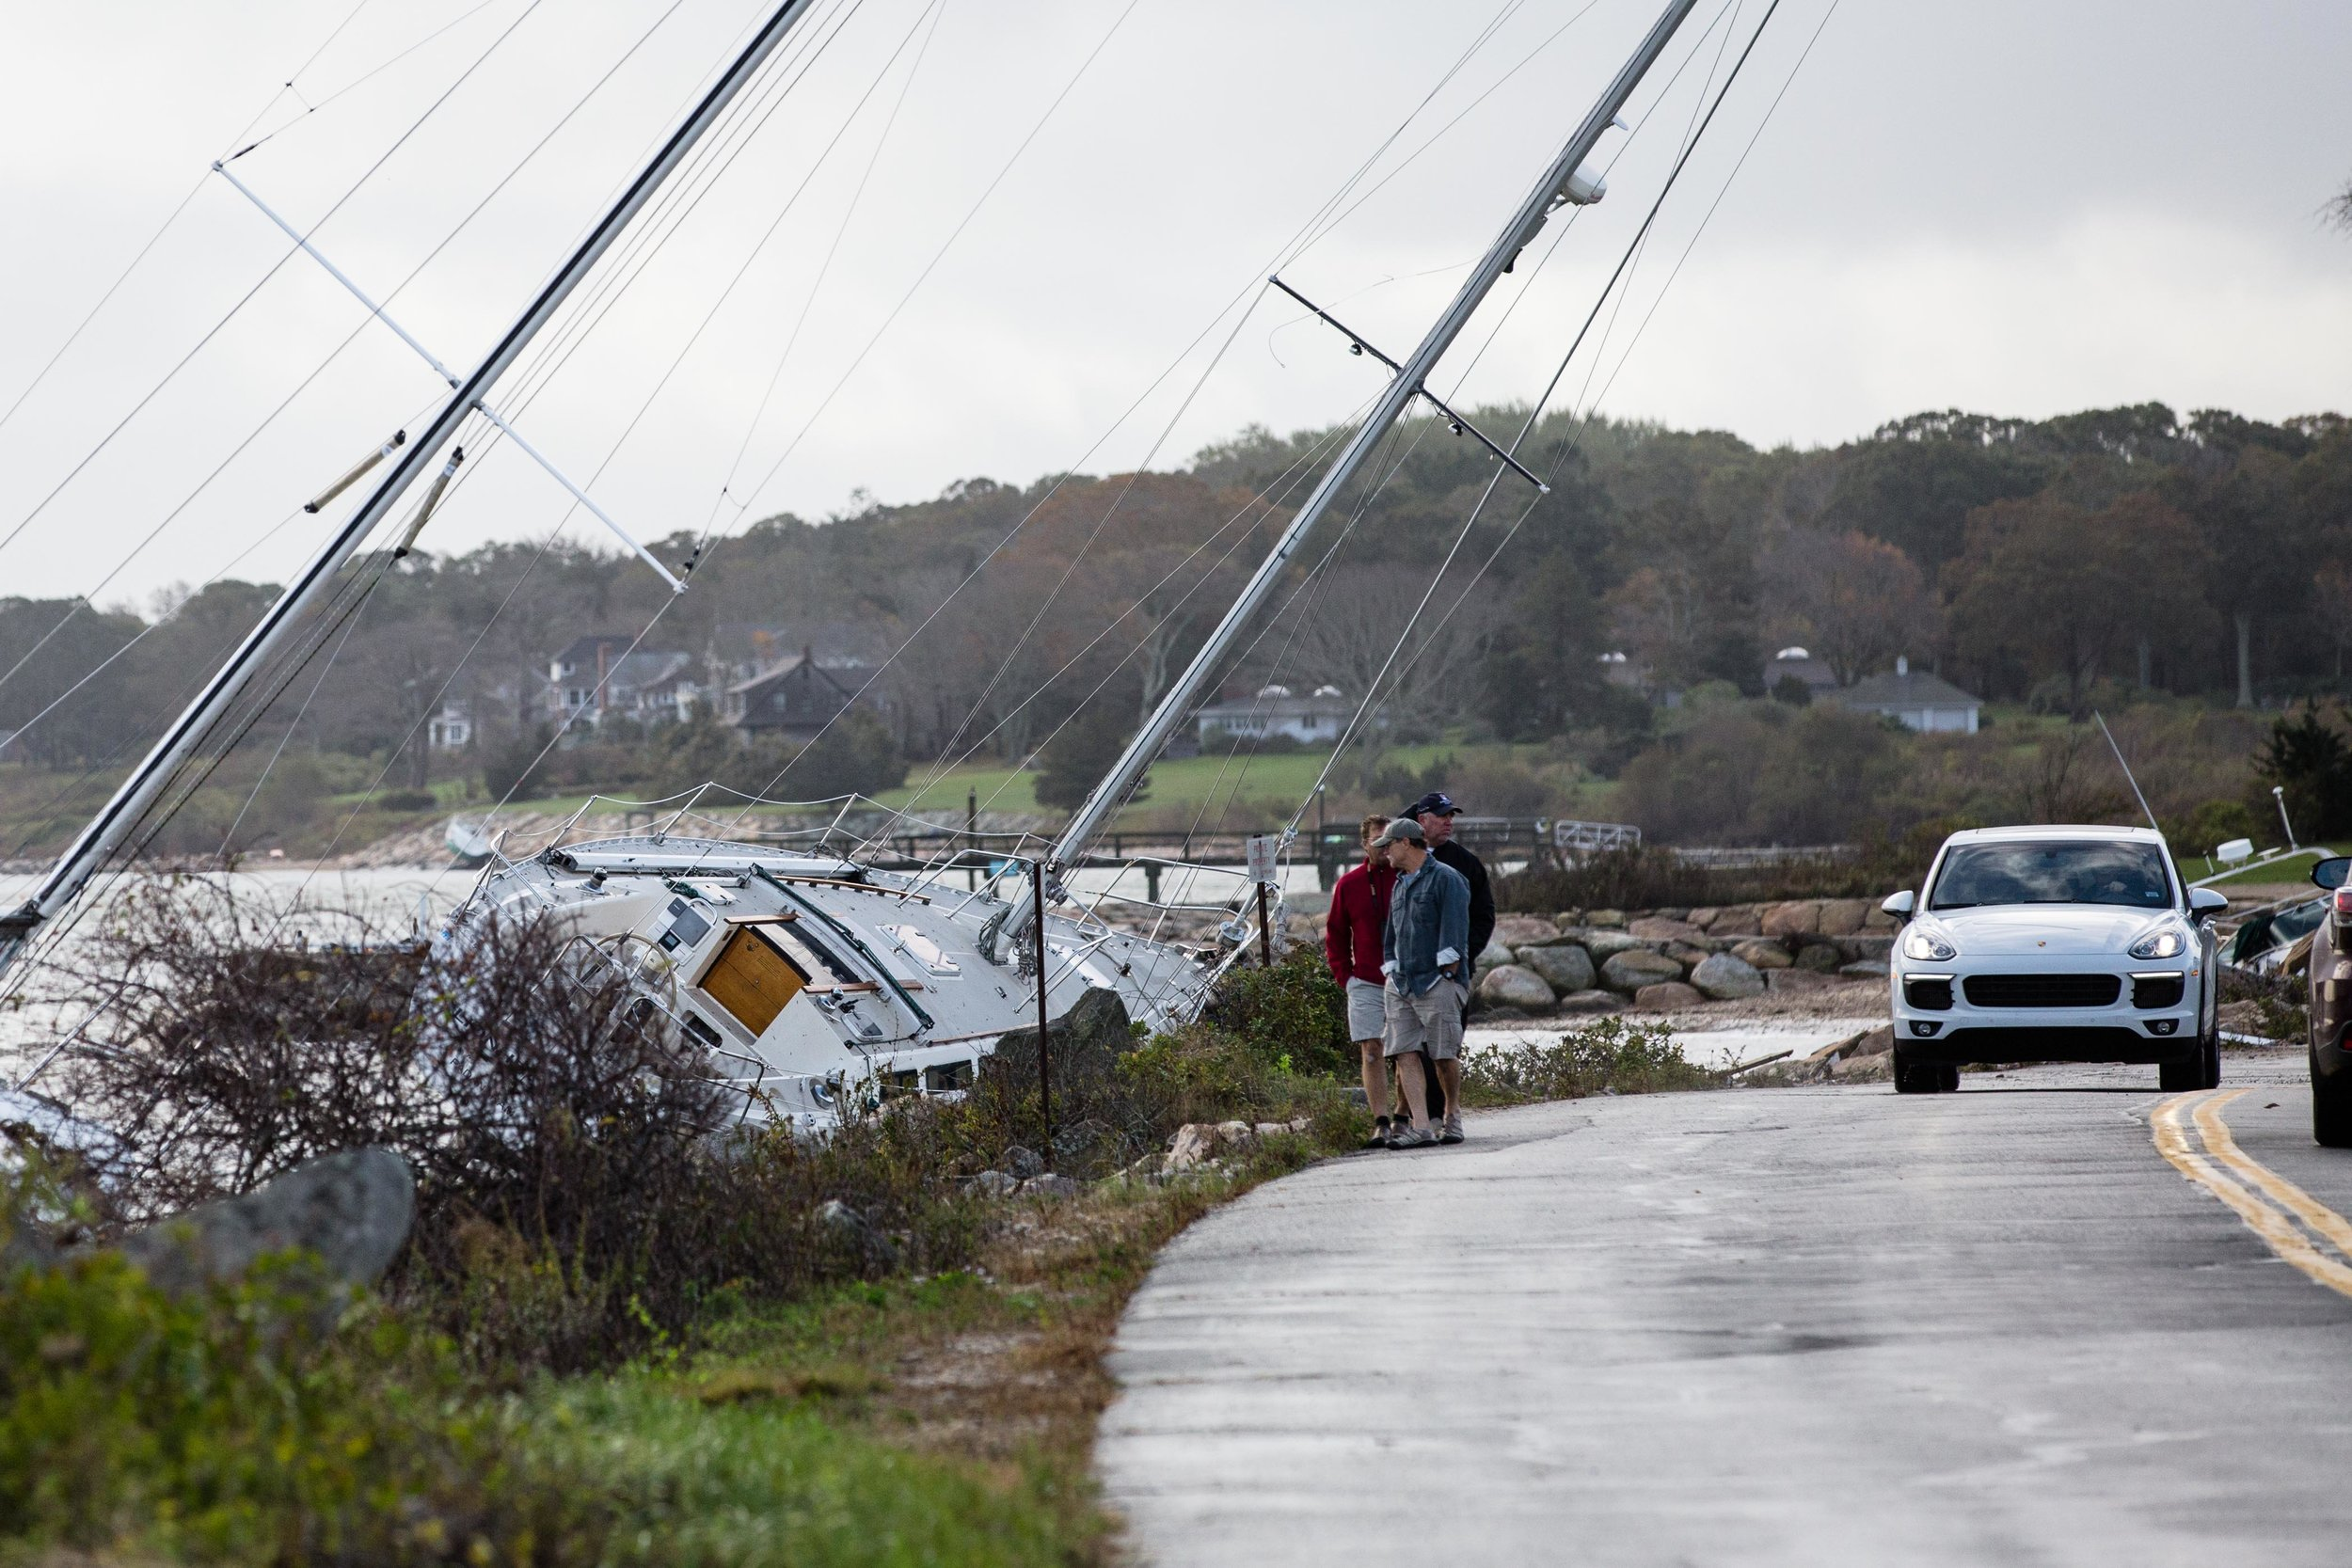 Masts can be seen hanging over Smithneck Road.